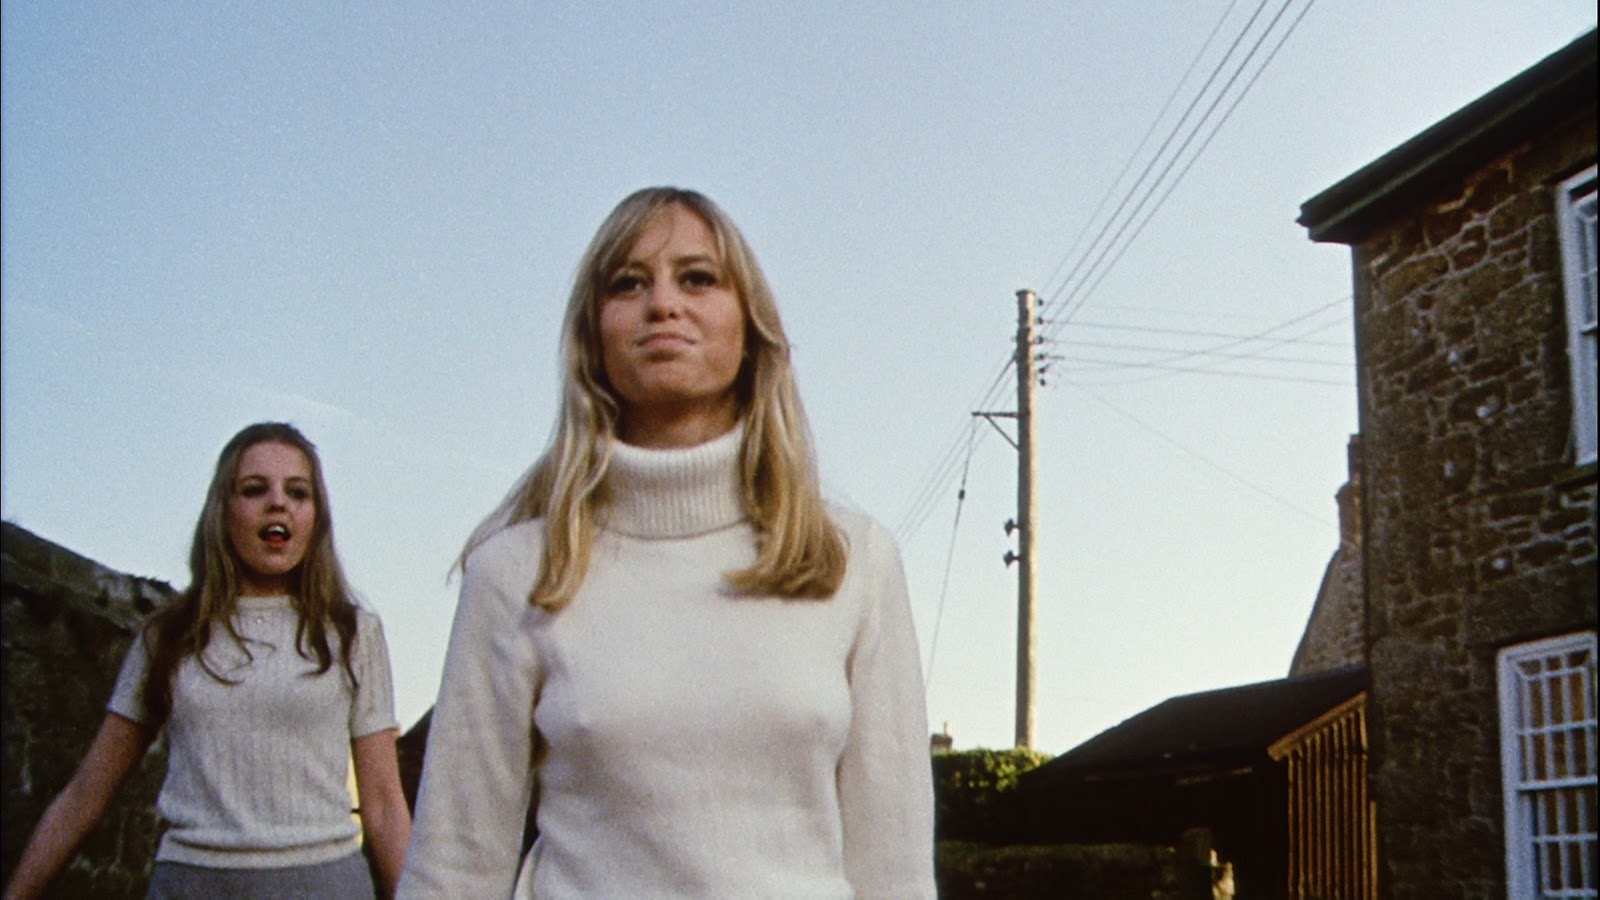 Susan George in Straw Dogs http://theincrediblystrangemovie.blogspot.com/2012/01/sam-peckinpahs-straw-dogs-uk-blu-ray.html#!